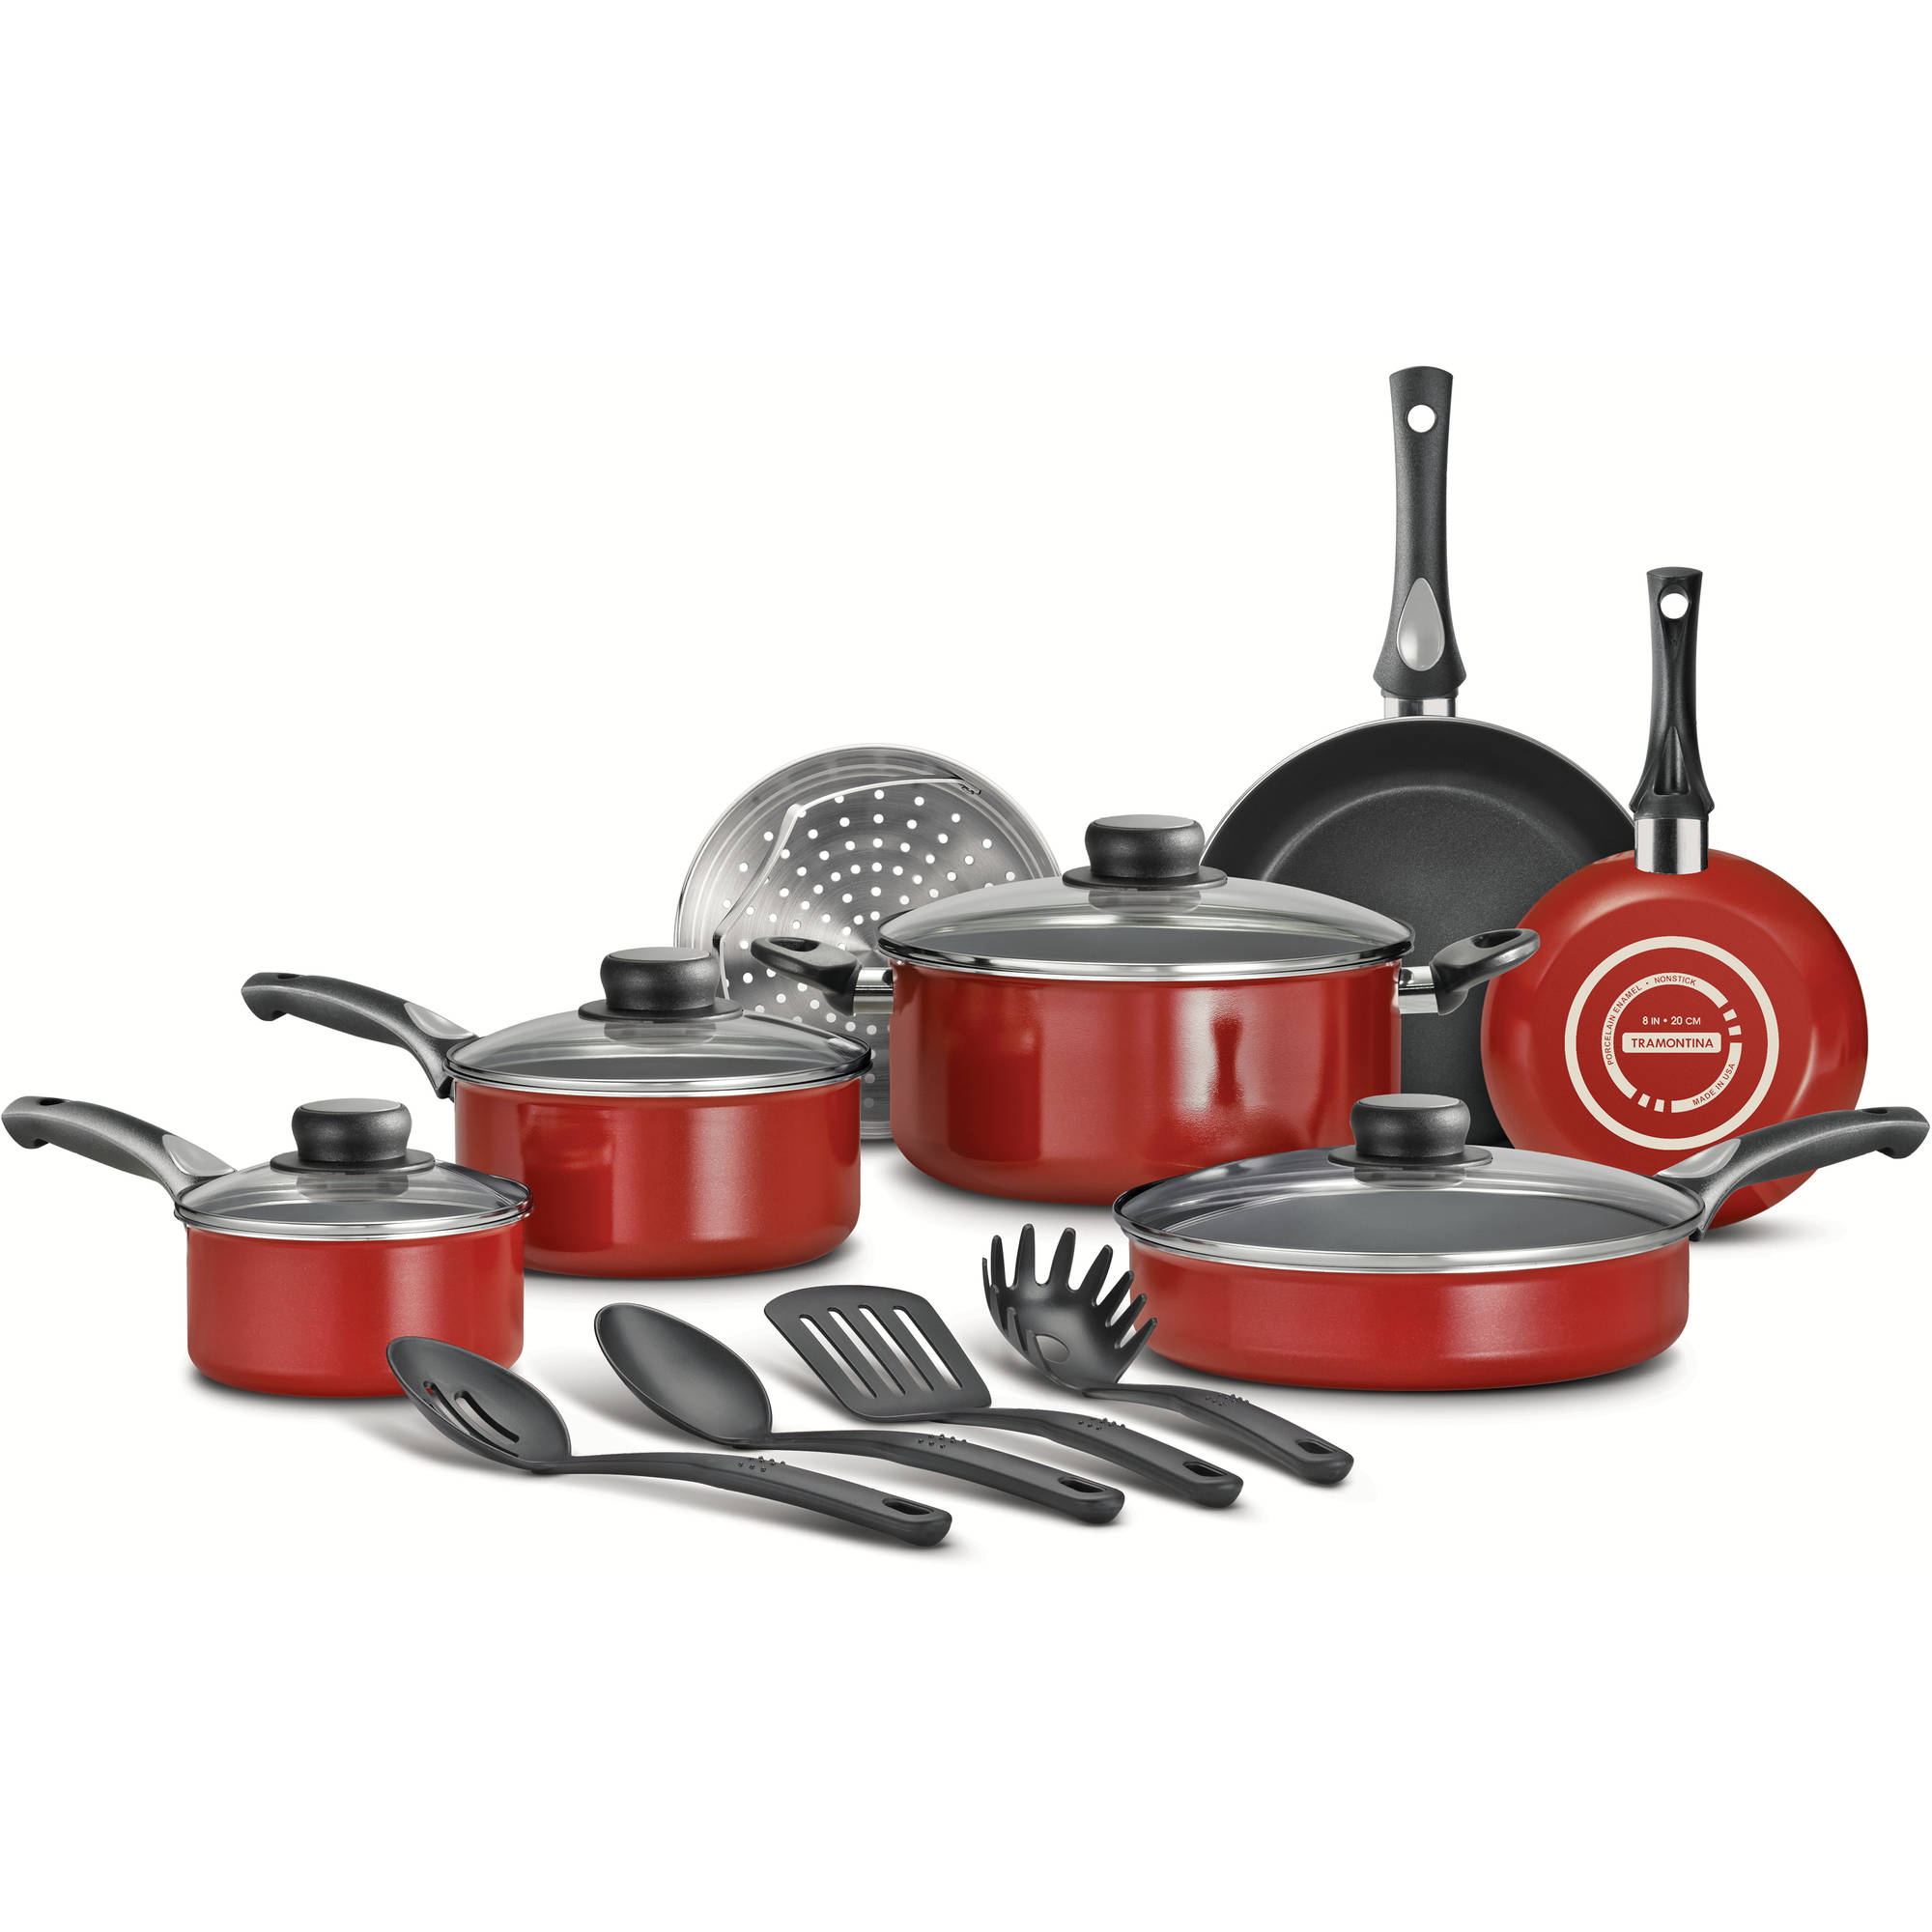 Tramontina USA Inc. Tramontina 15 - Piece Select Non - Stick Cookware Set, Cayenne Red